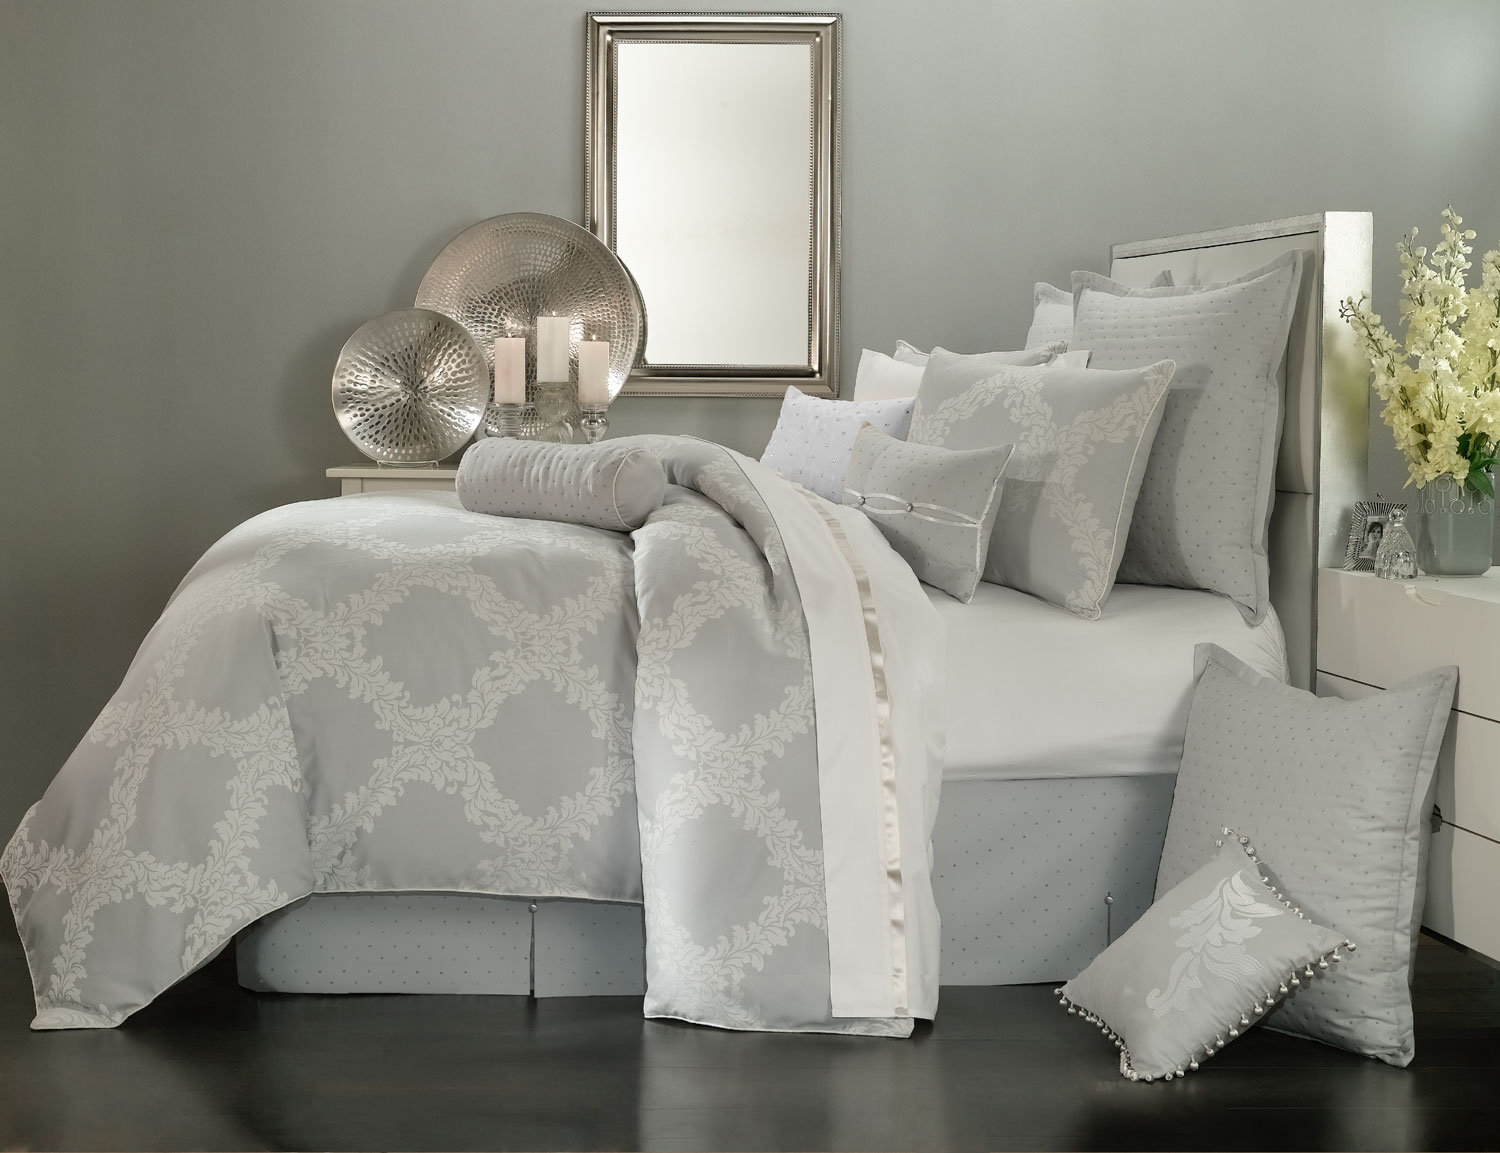 Acanthus Arbor Grey by Waterford Luxury Bedding - BeddingSuperStore.com